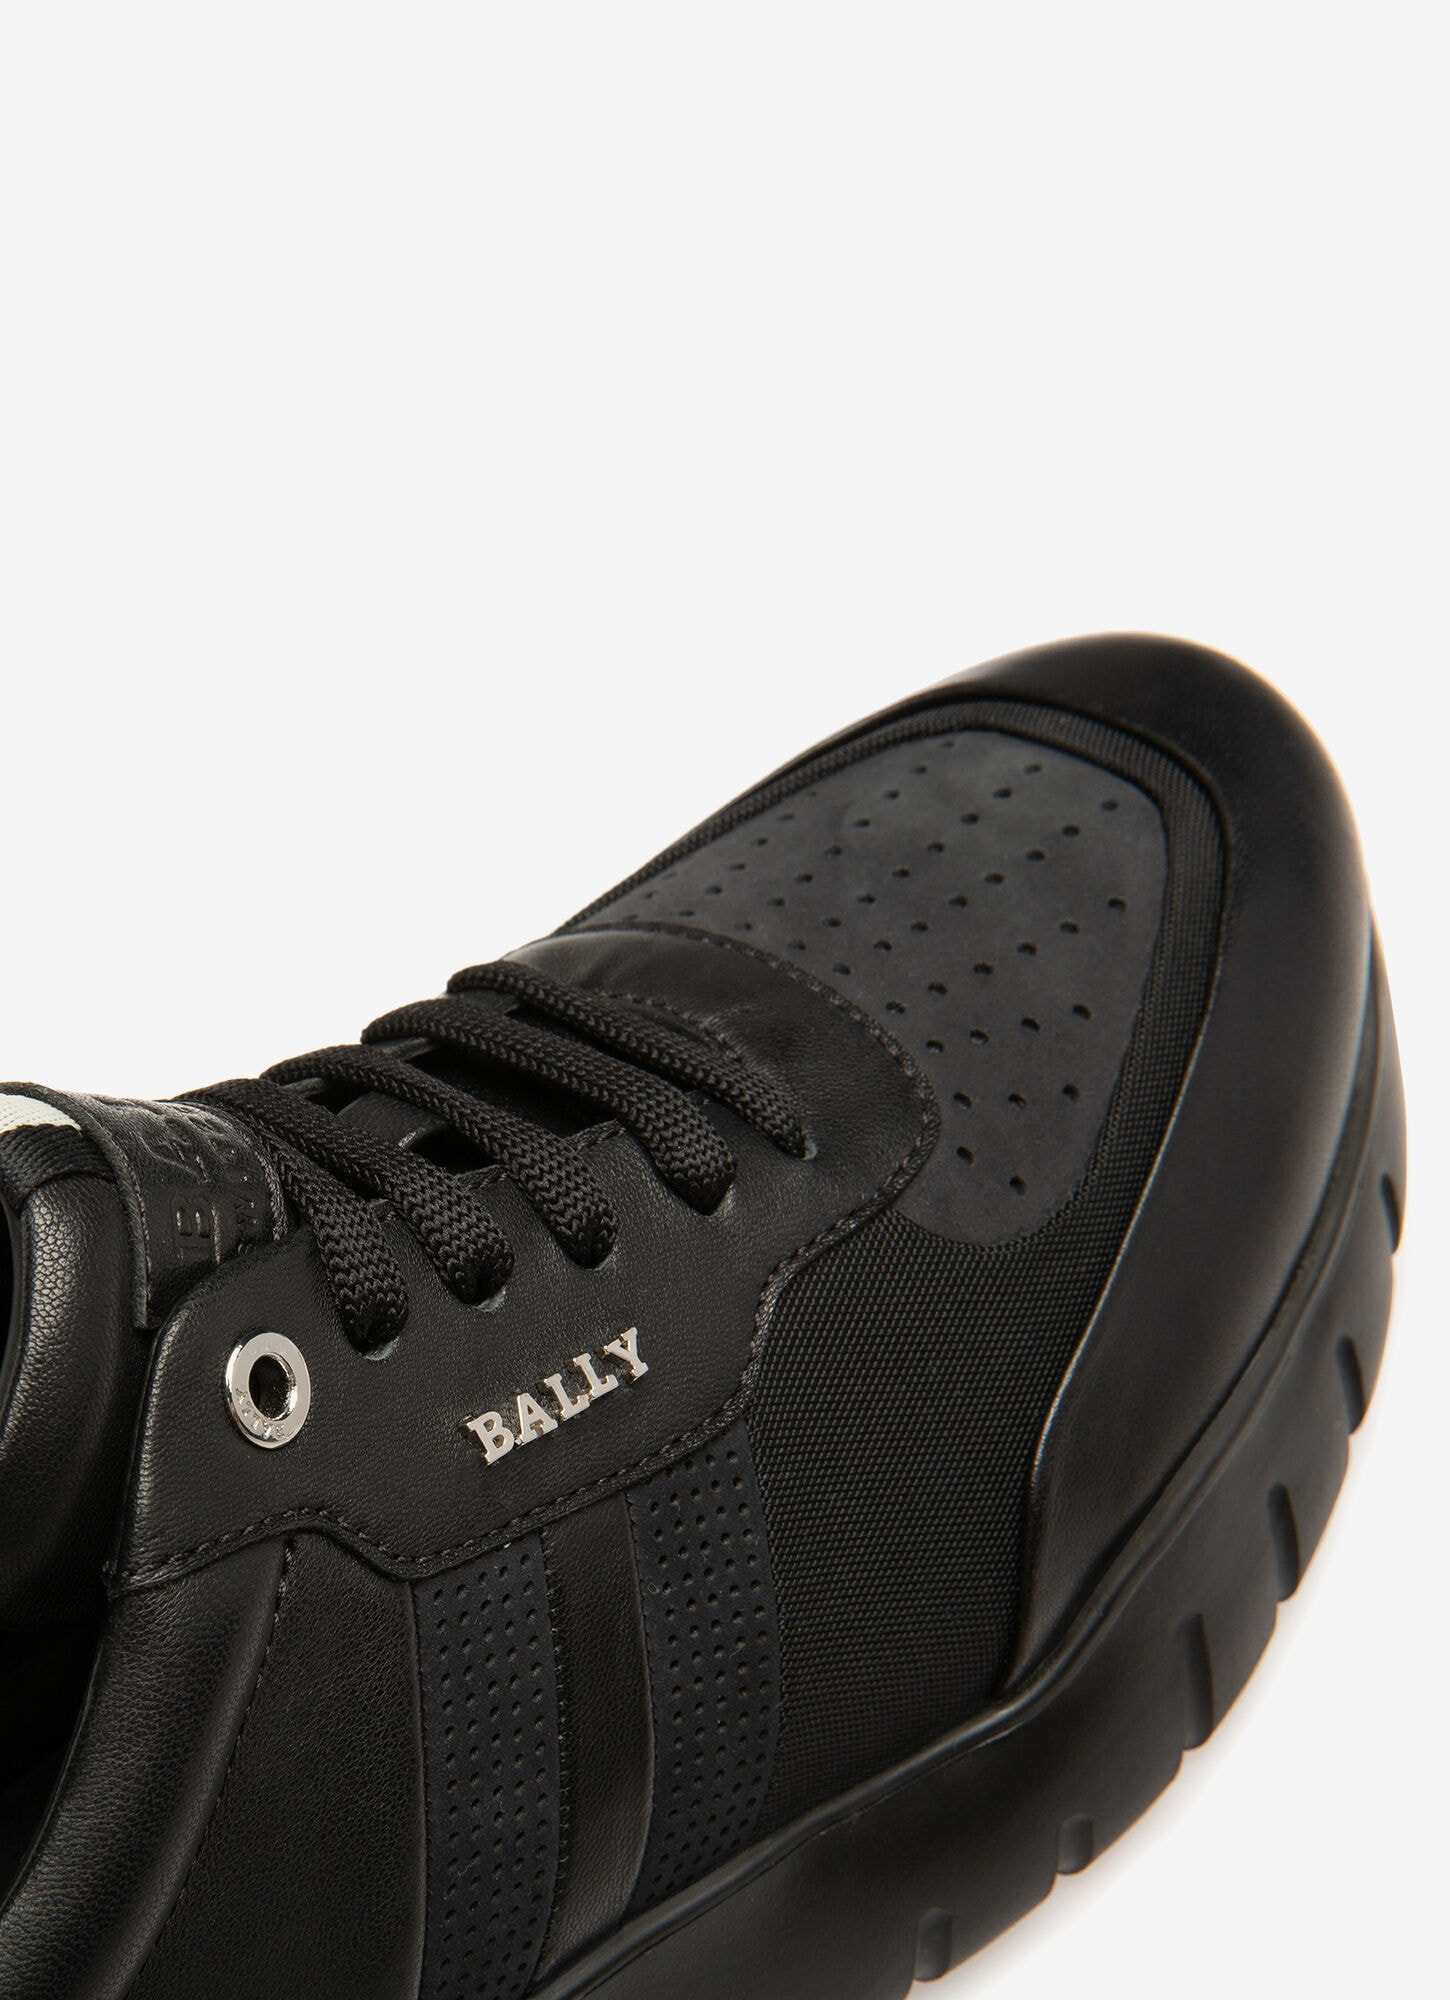 Bison| Mens Sneakers | Black Leather